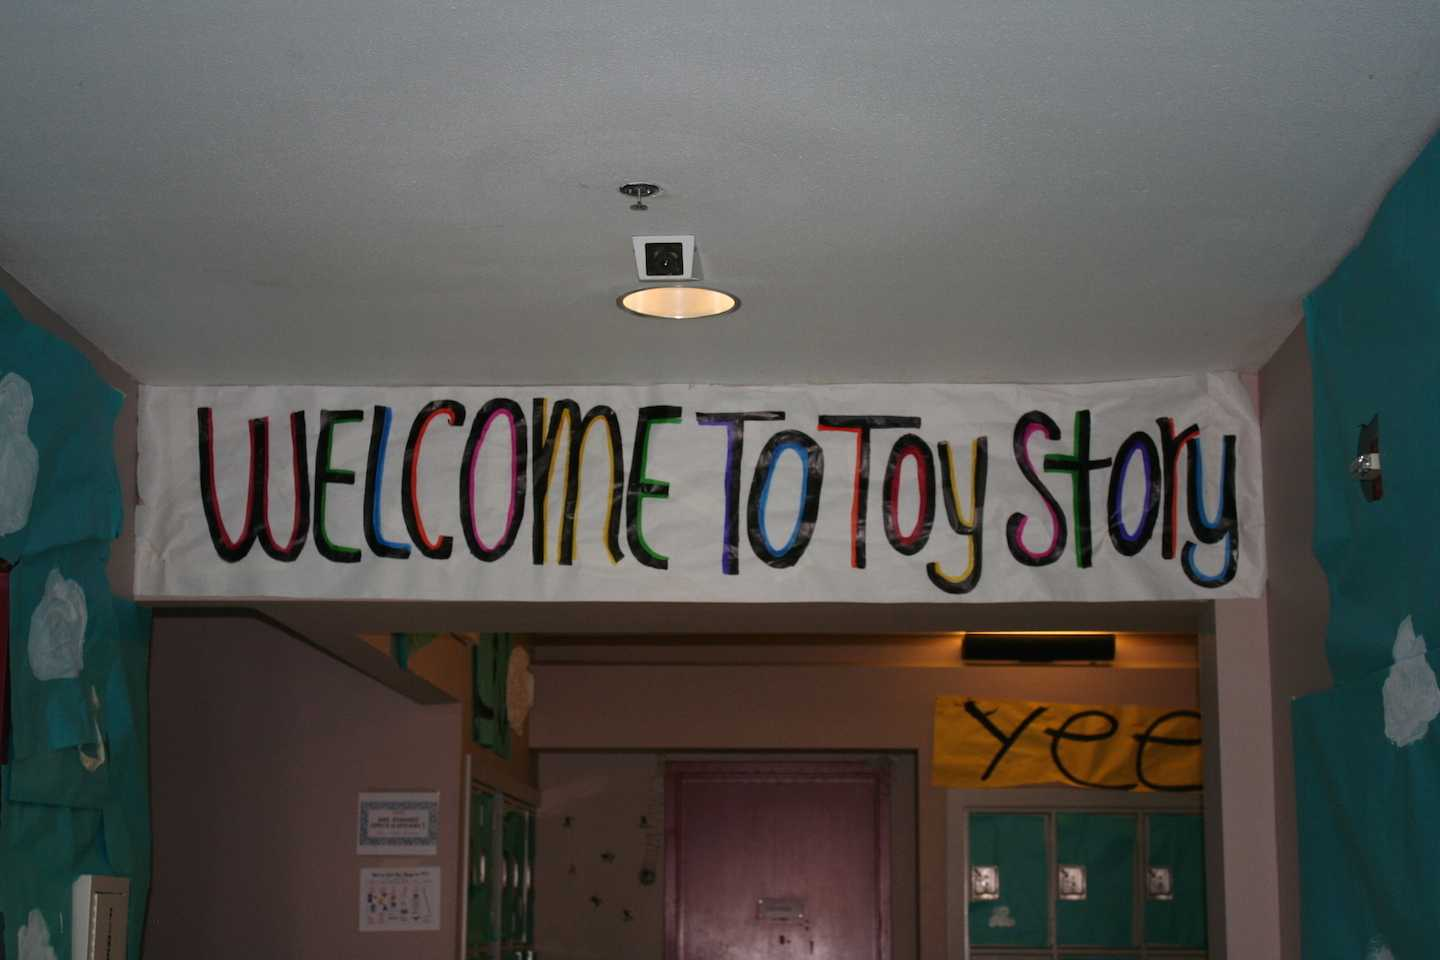 Toy+Story+is+in+the+Language+building%2C+and+welcomes+everyone+for+a+fun+time.